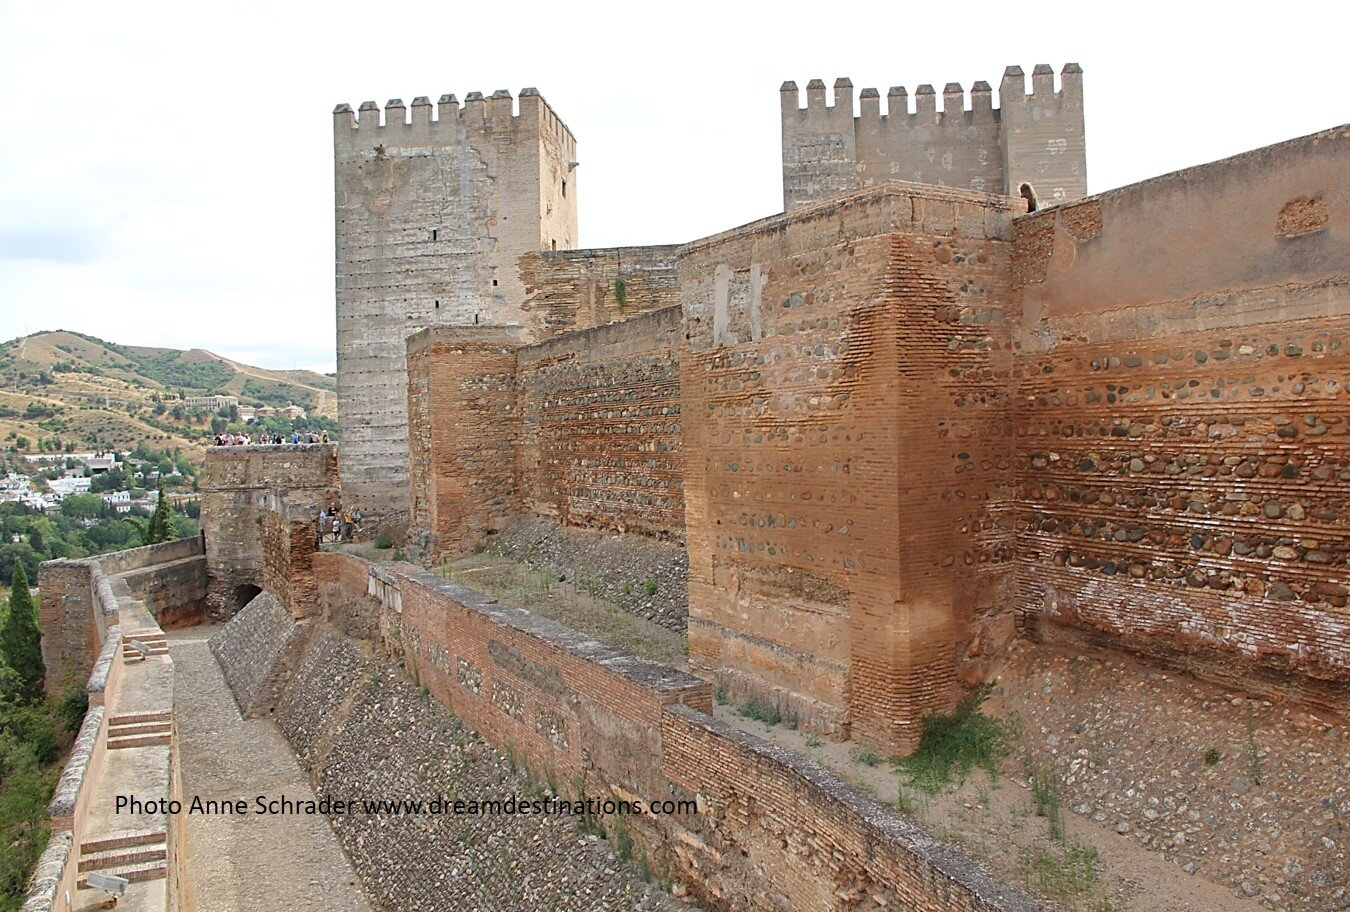 Outer Walls of the Alhambra